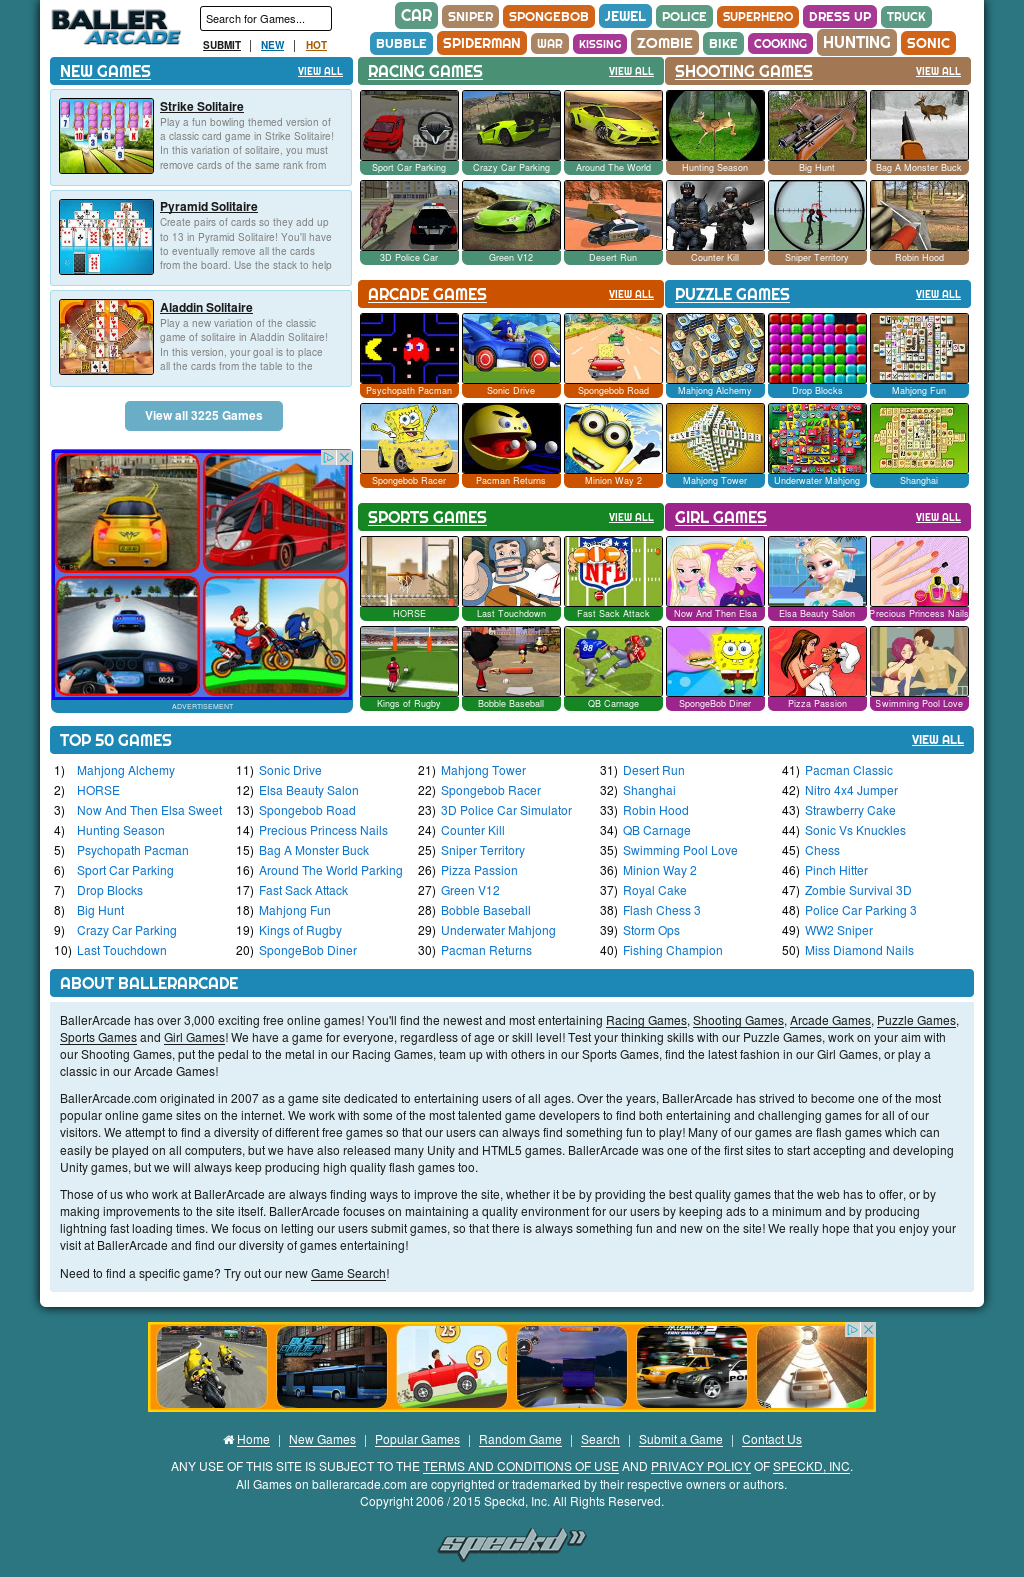 Baller Arcade Competitors, Revenue and Employees - Owler Company Profile